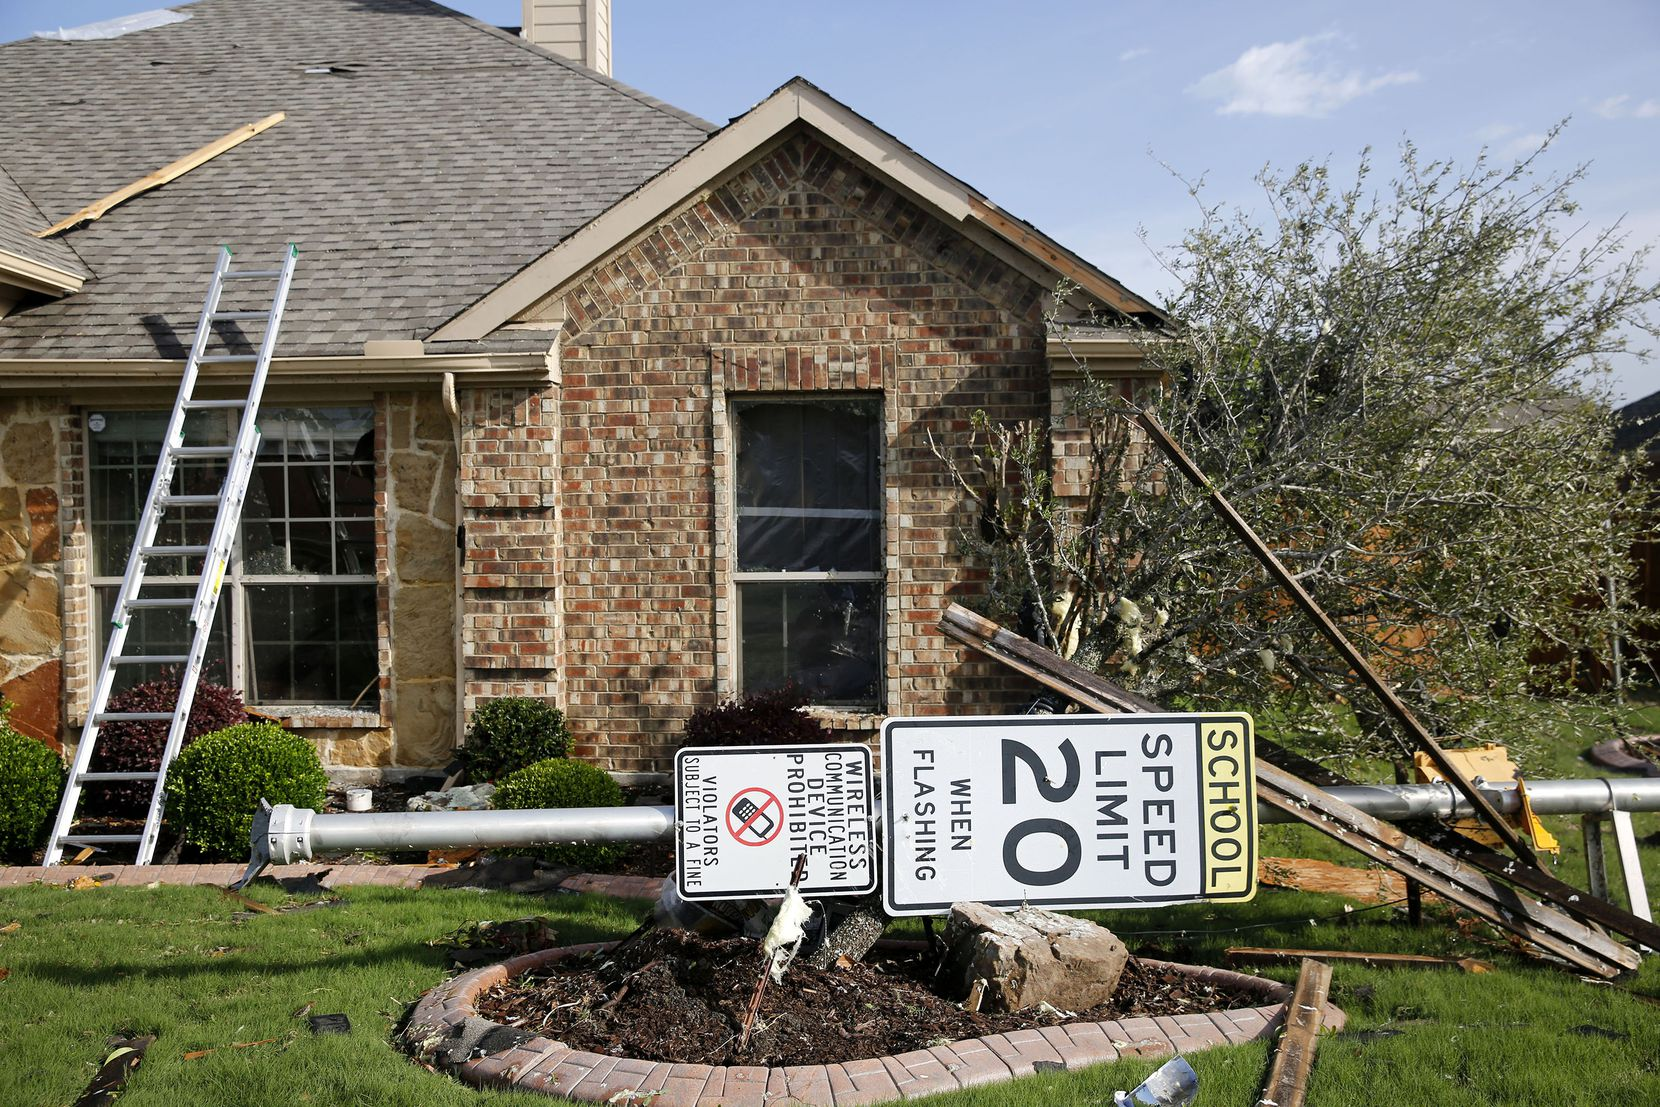 A sign lays in the yard of a home along Tannerson Drive following the storm in Rockwall. (Rose Baca/Staff Photographer)